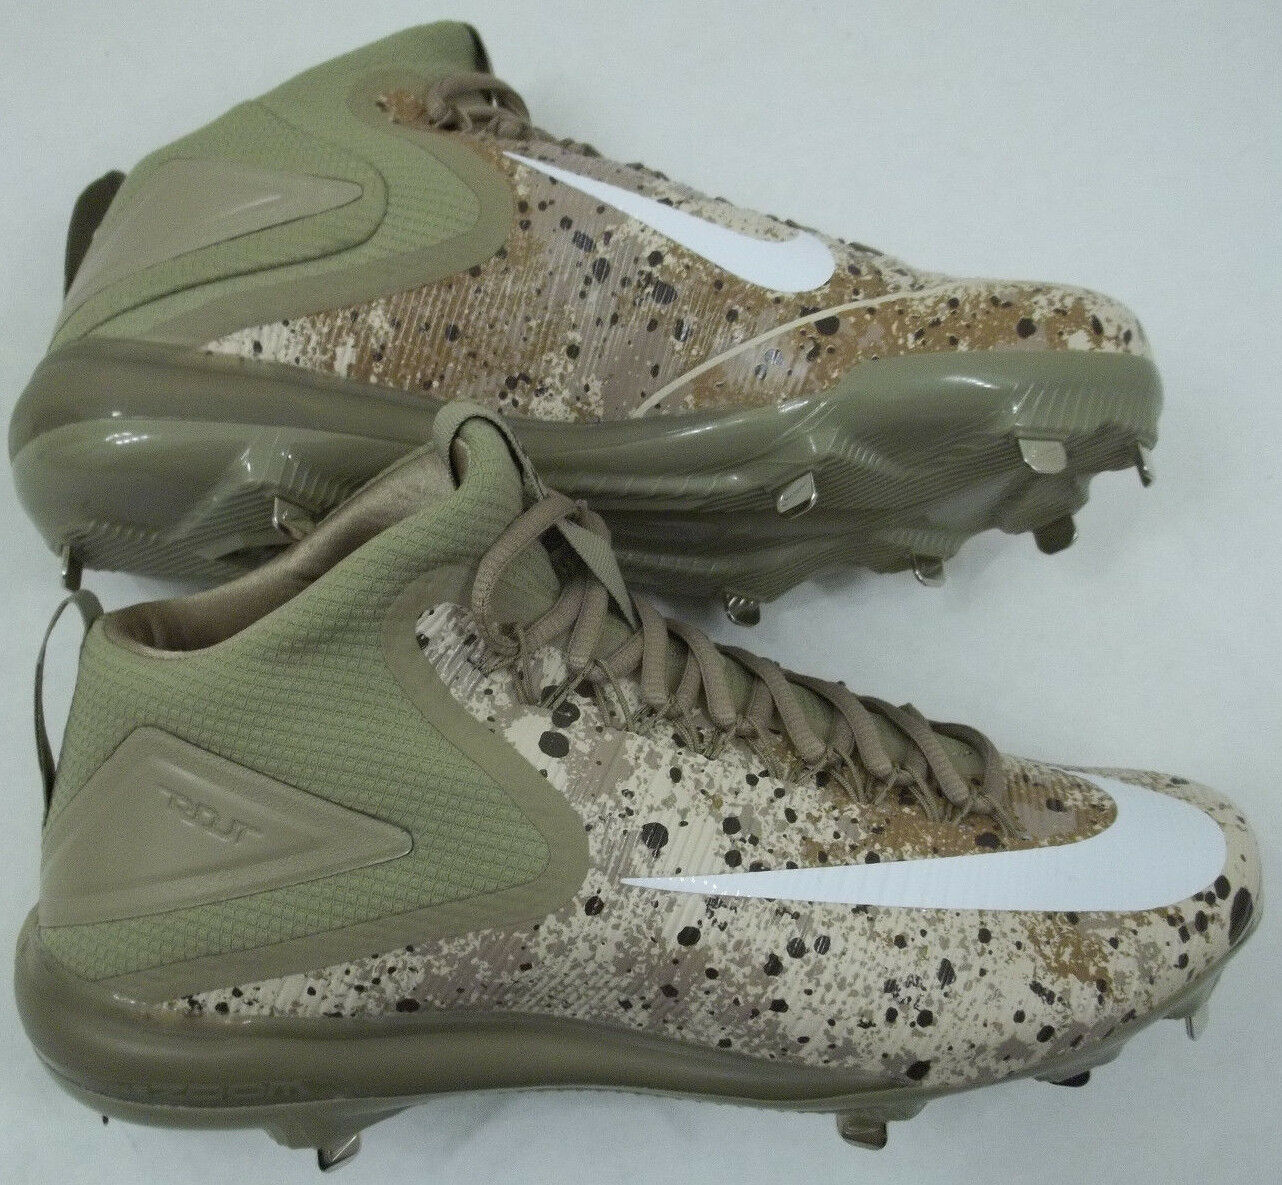 NEW Nike Trout 3 Men's Size 12 Force Zoom Baseball Cleat Desert Camo 856503-212